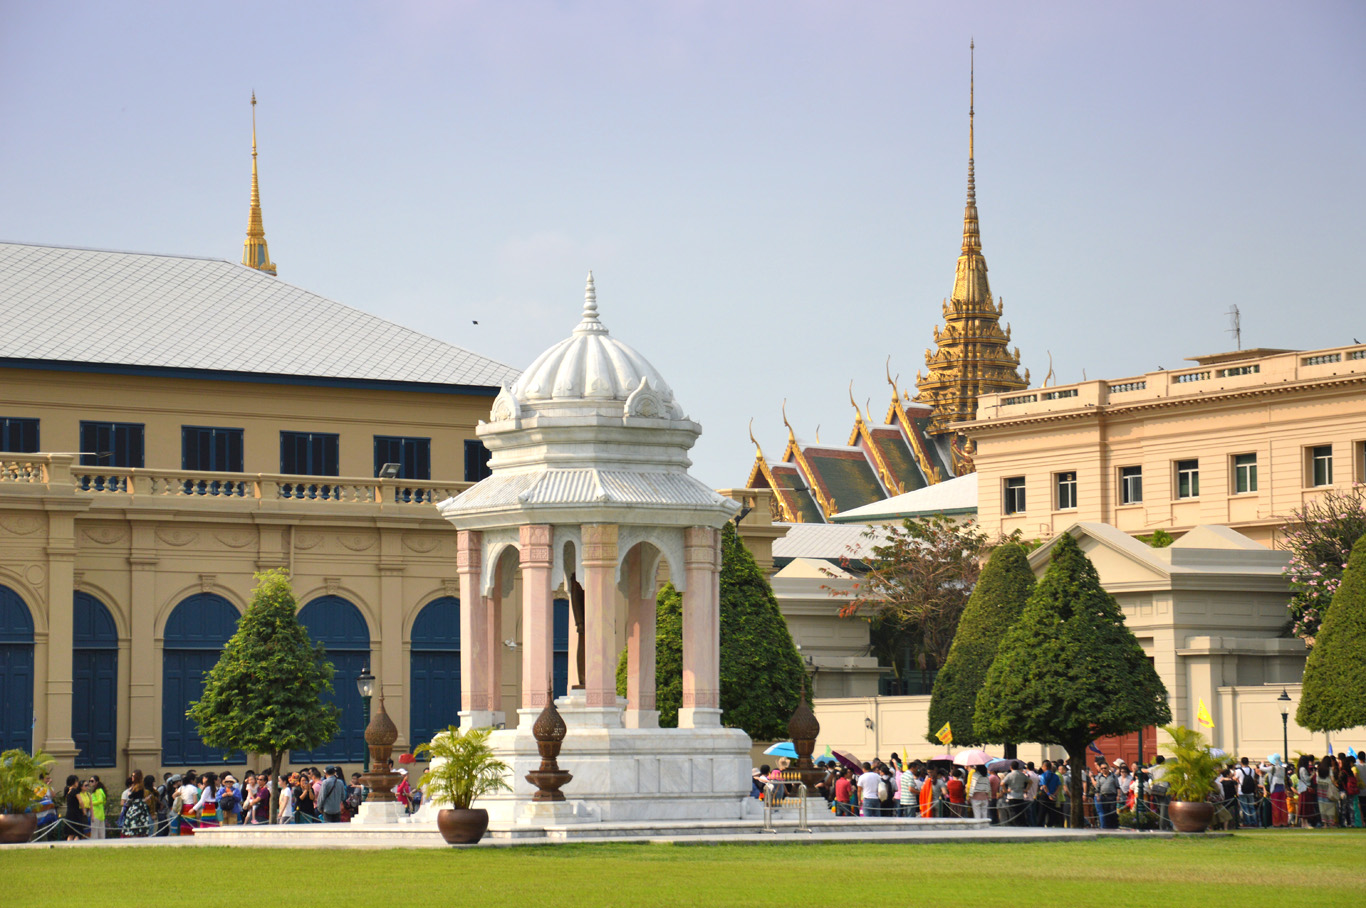 Line of tourists trying to get to the Palace